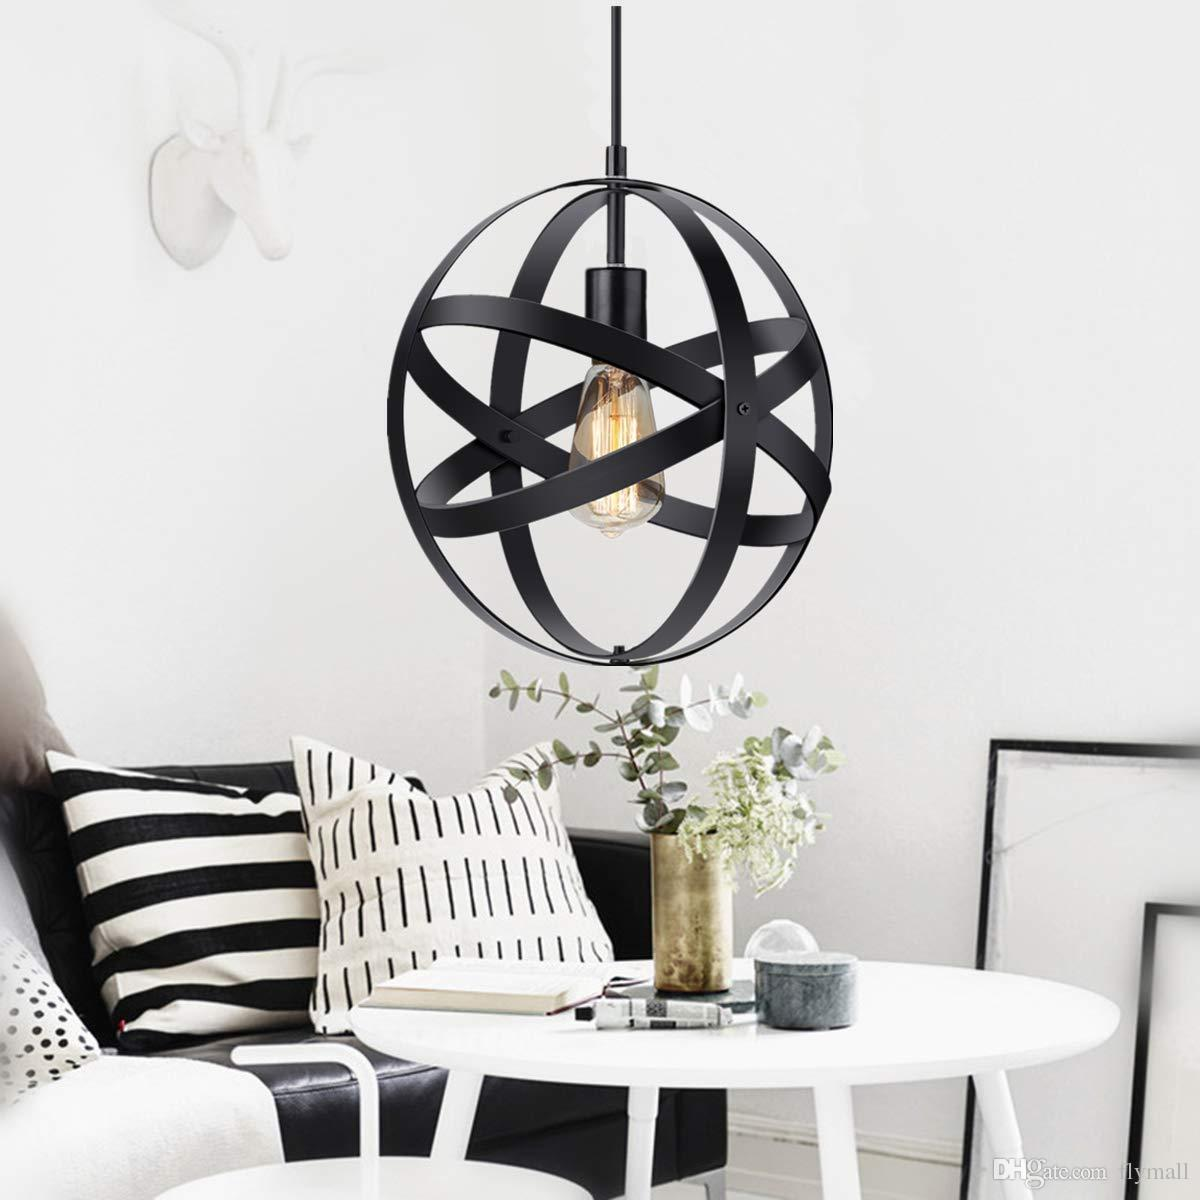 Industrial Metal Pendant Lamp Rustic Chandelier Vintage Hanging Cage Globe Ceiling Light Fixture for Kitchen Dining Room Entryway